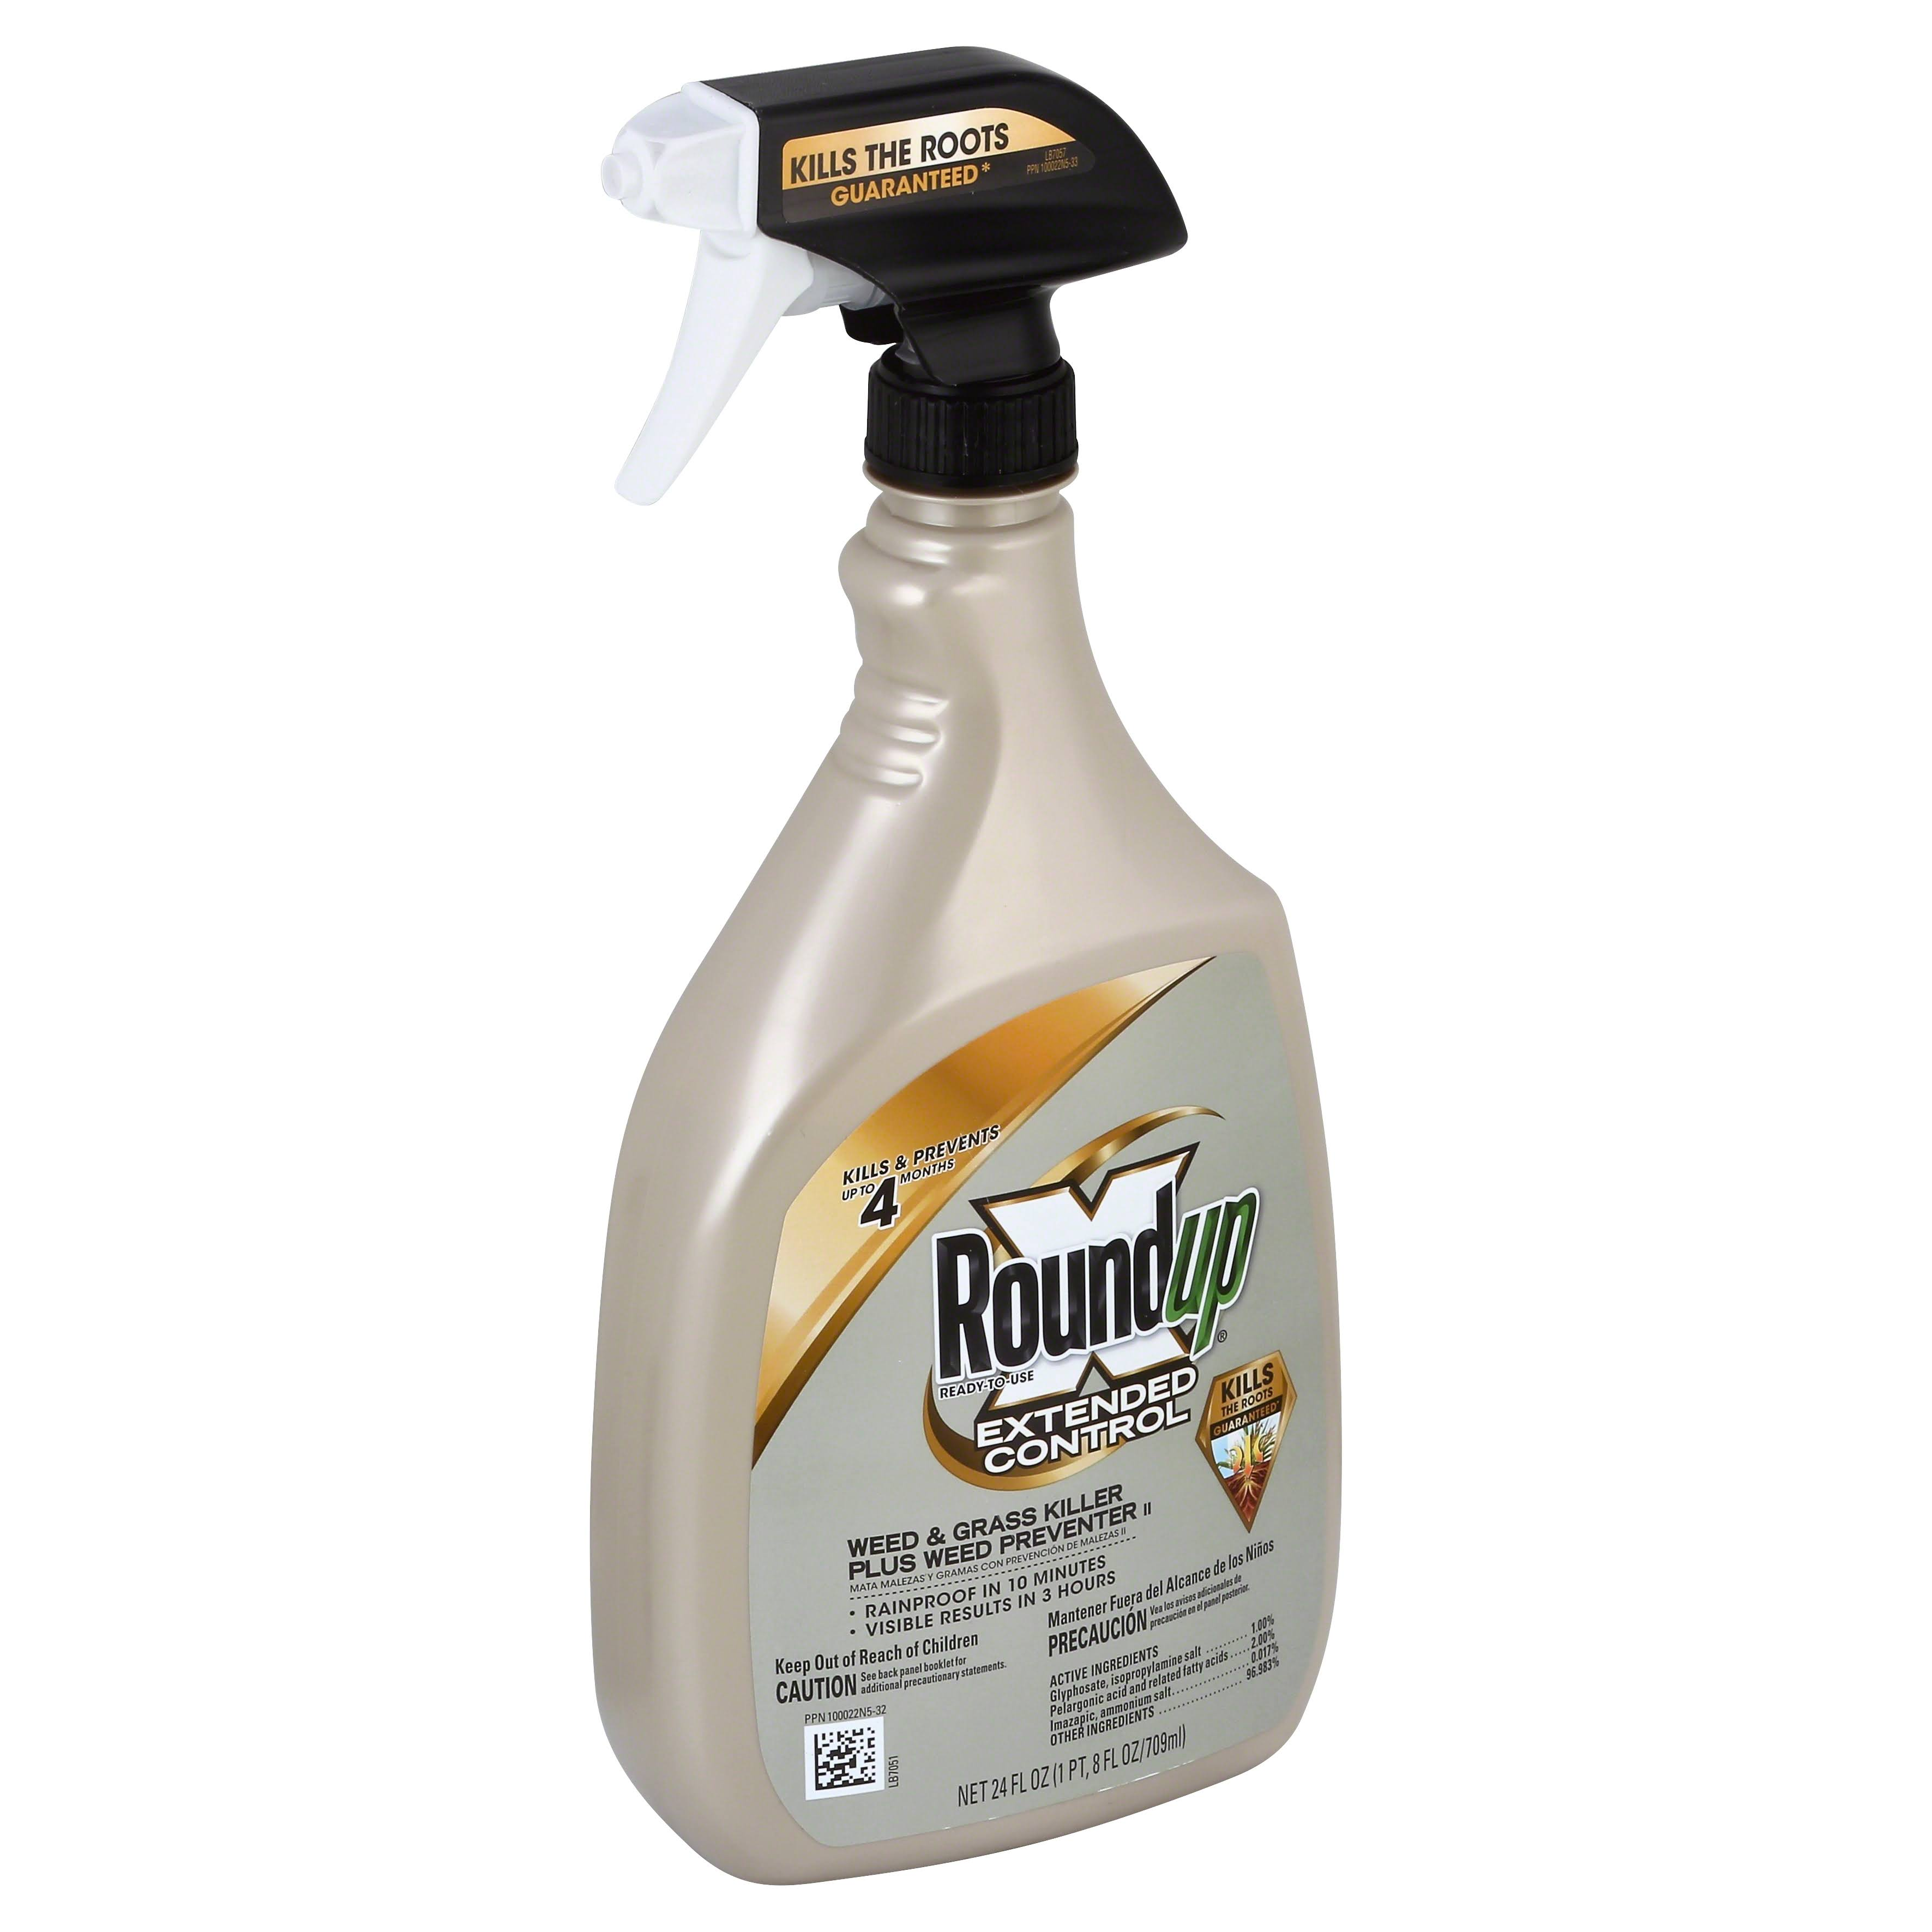 Scotts Roundup Extended Control Weed & Grass Killer Spray - 24oz